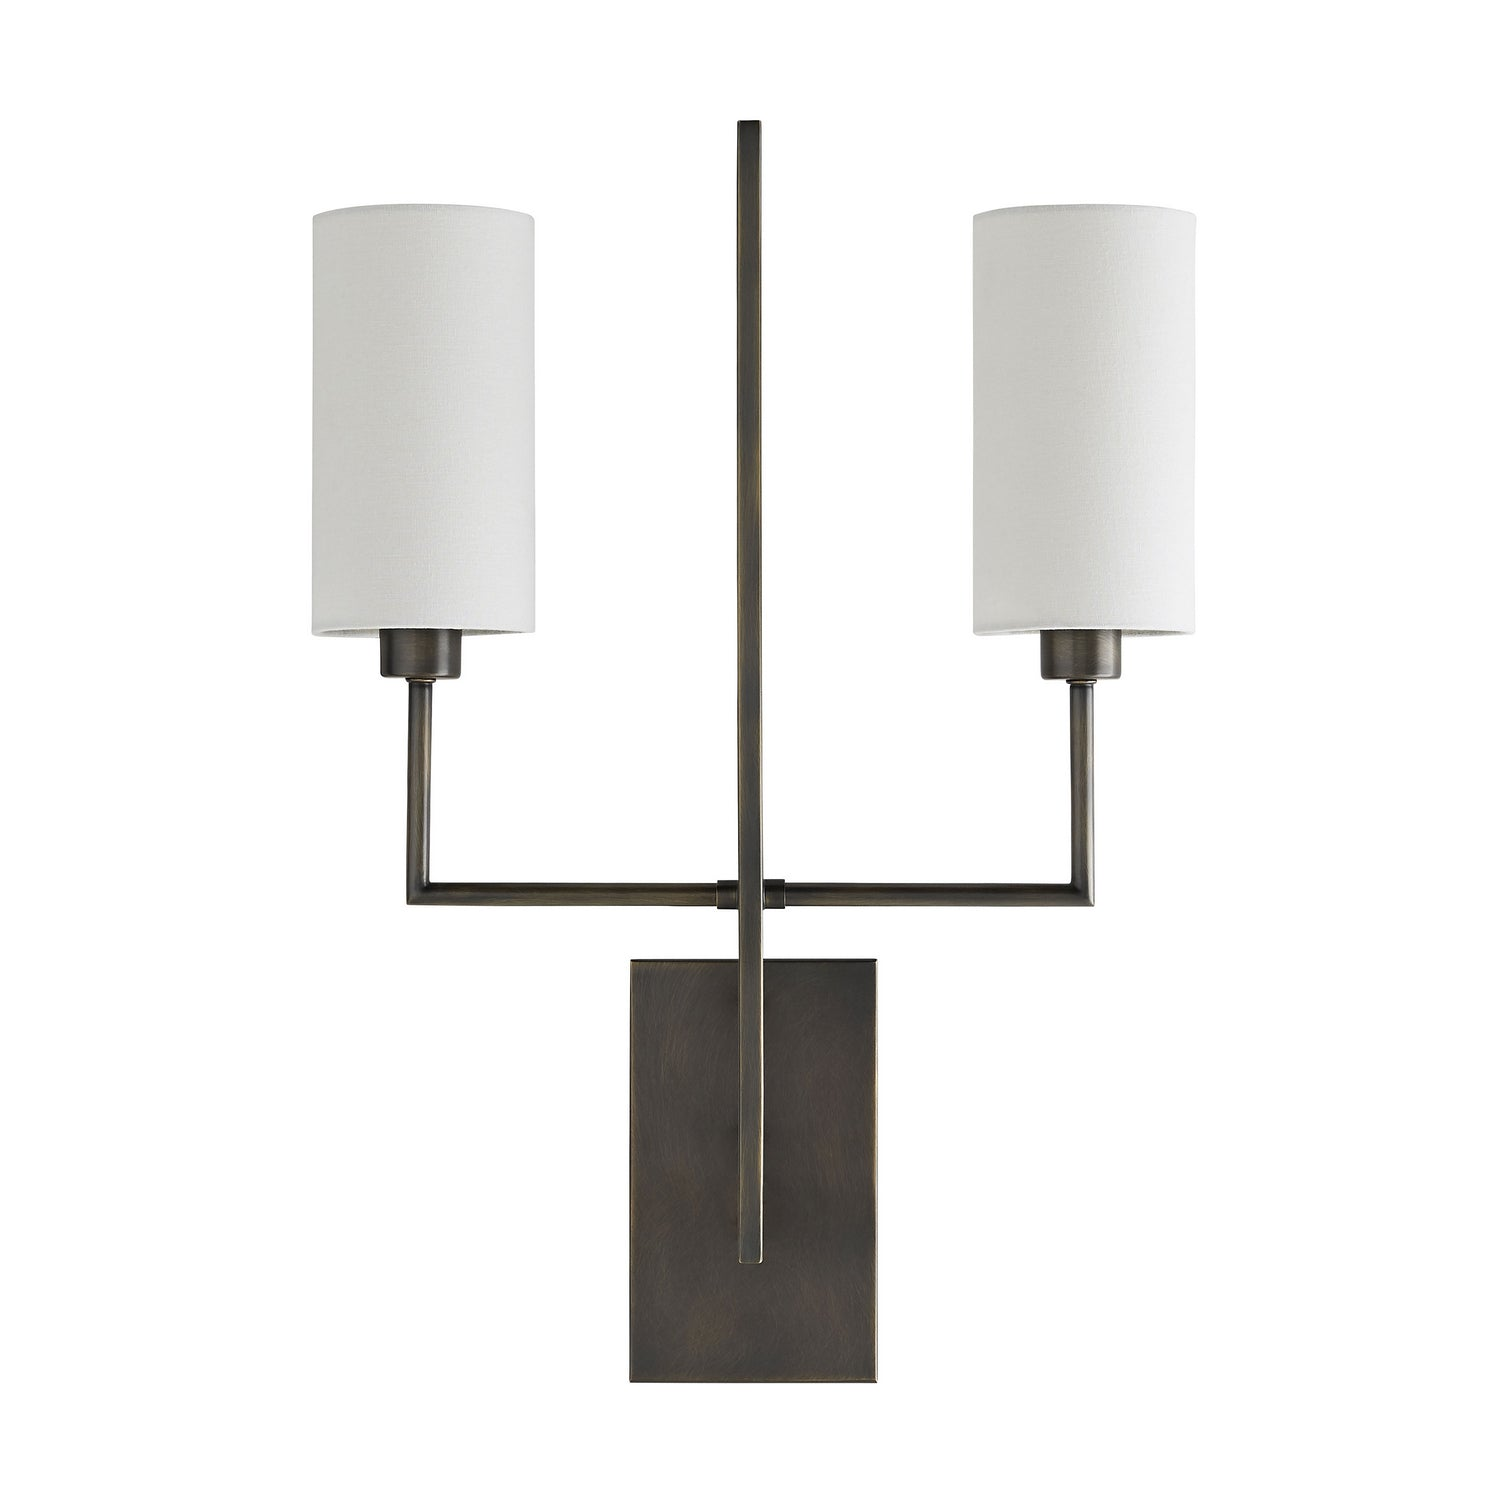 Arteriors - Two Light Wall Sconce - Ray Booth for Arteriors - Aged Bronze